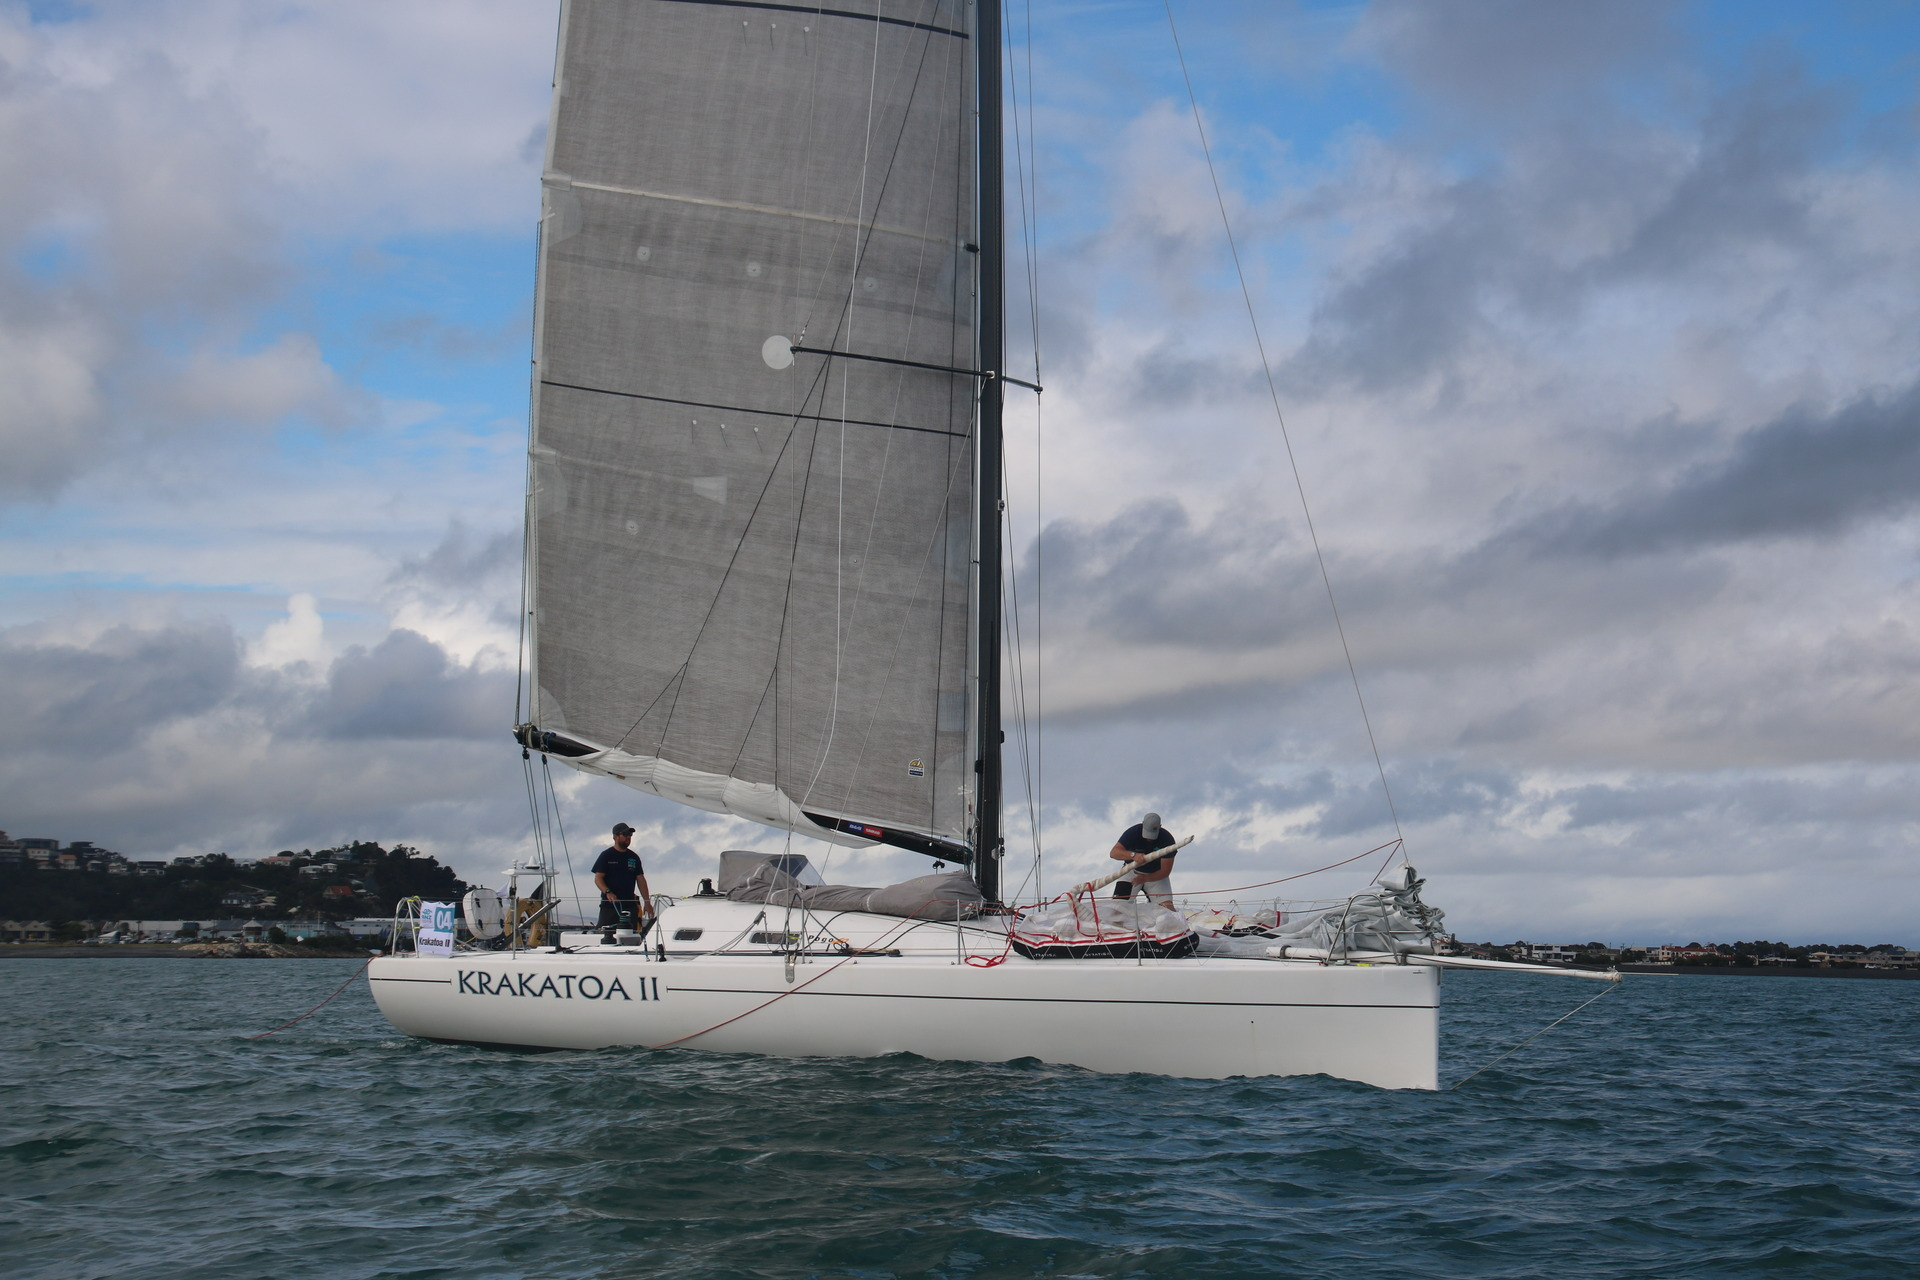 Sailing: Krakatoa II returns to Napier after co-skipper concussed in fall